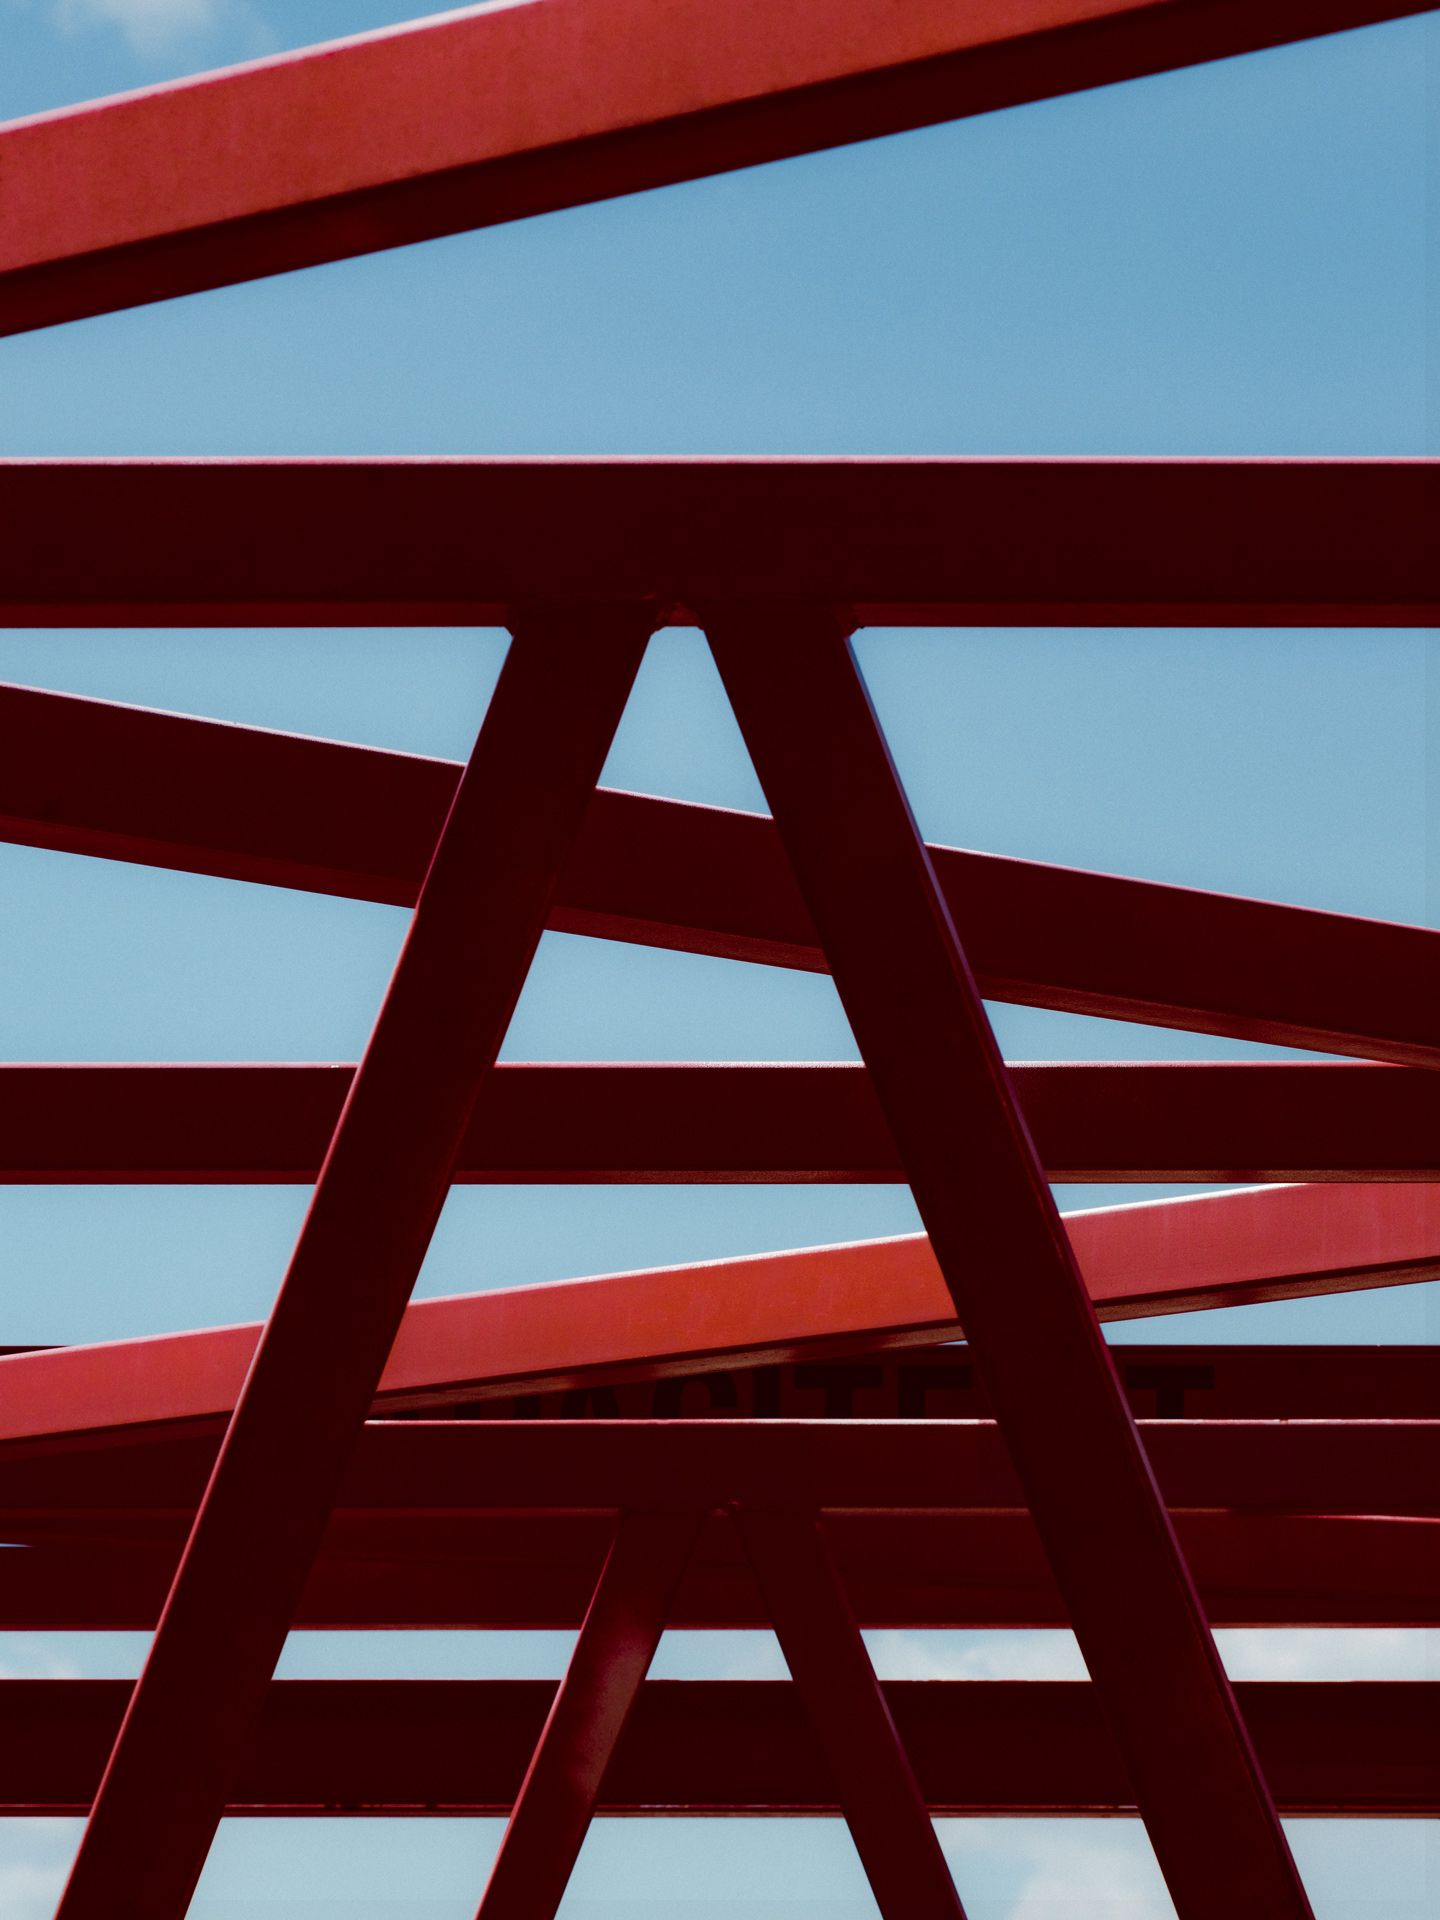 geometric architecture of red steel by Alexi Hobbs for Port of Montreal with Ogilvy